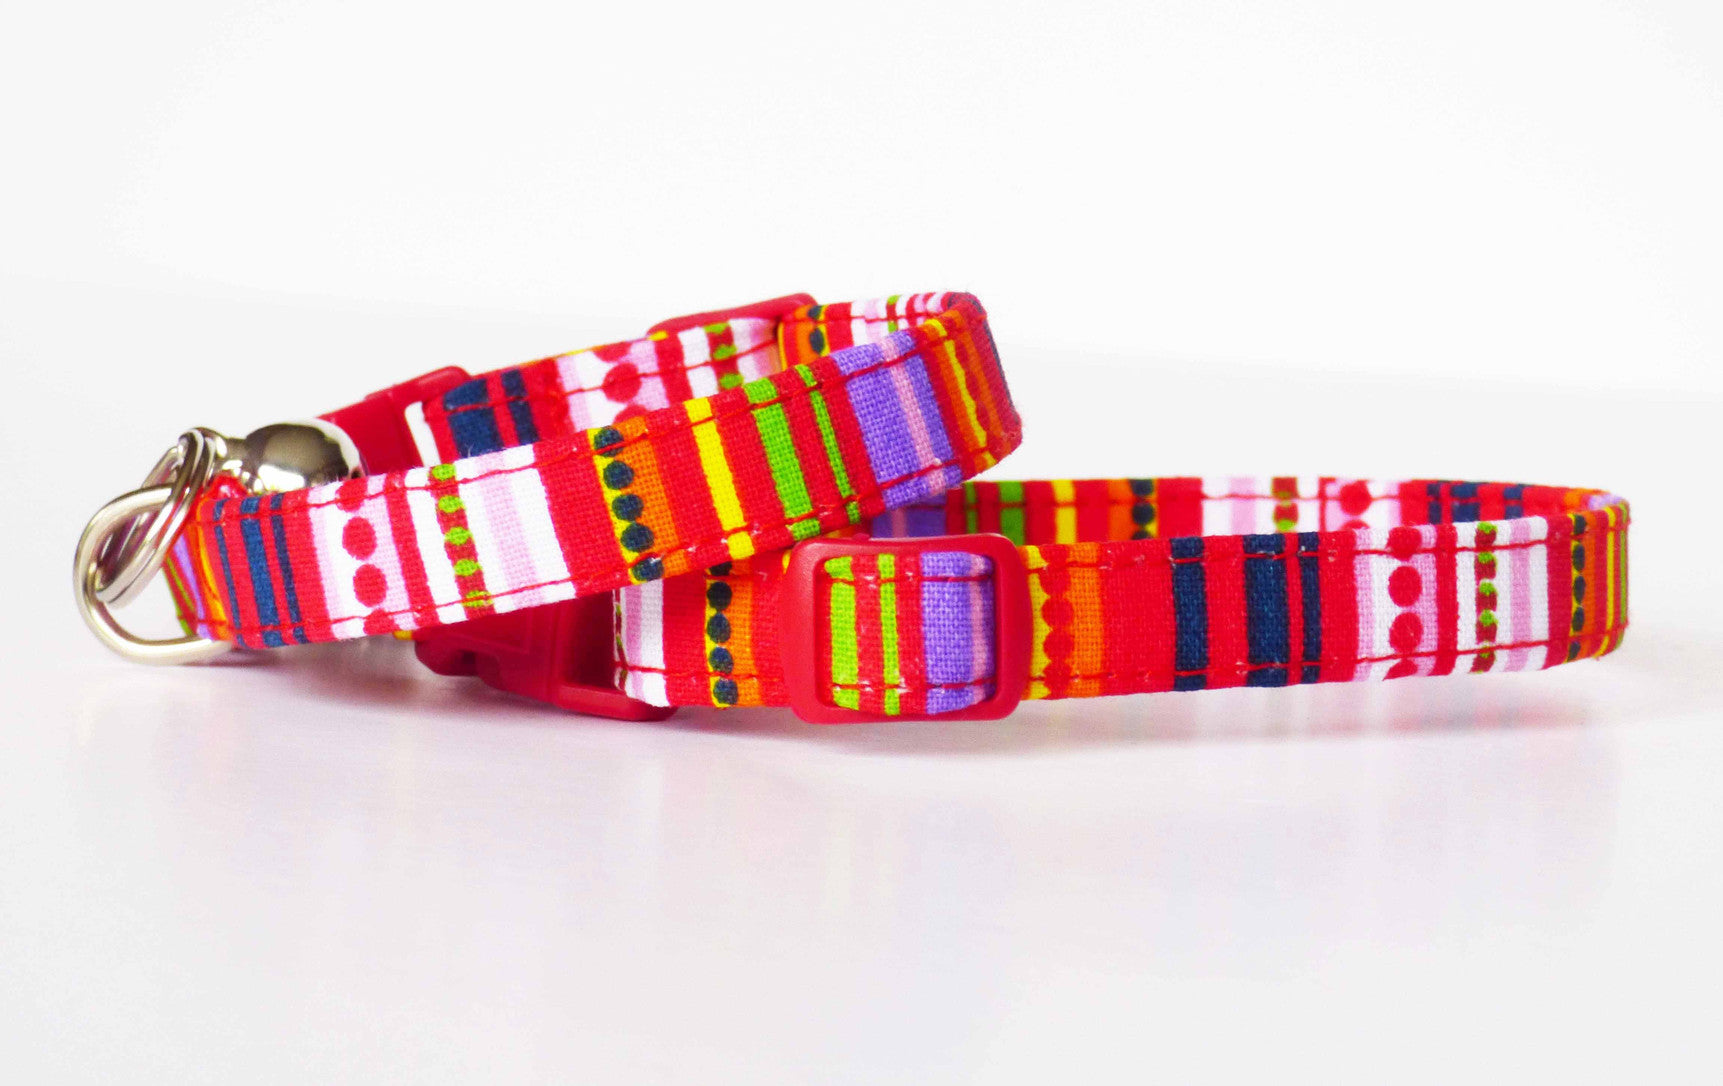 Berrylicious Dog Collar Range